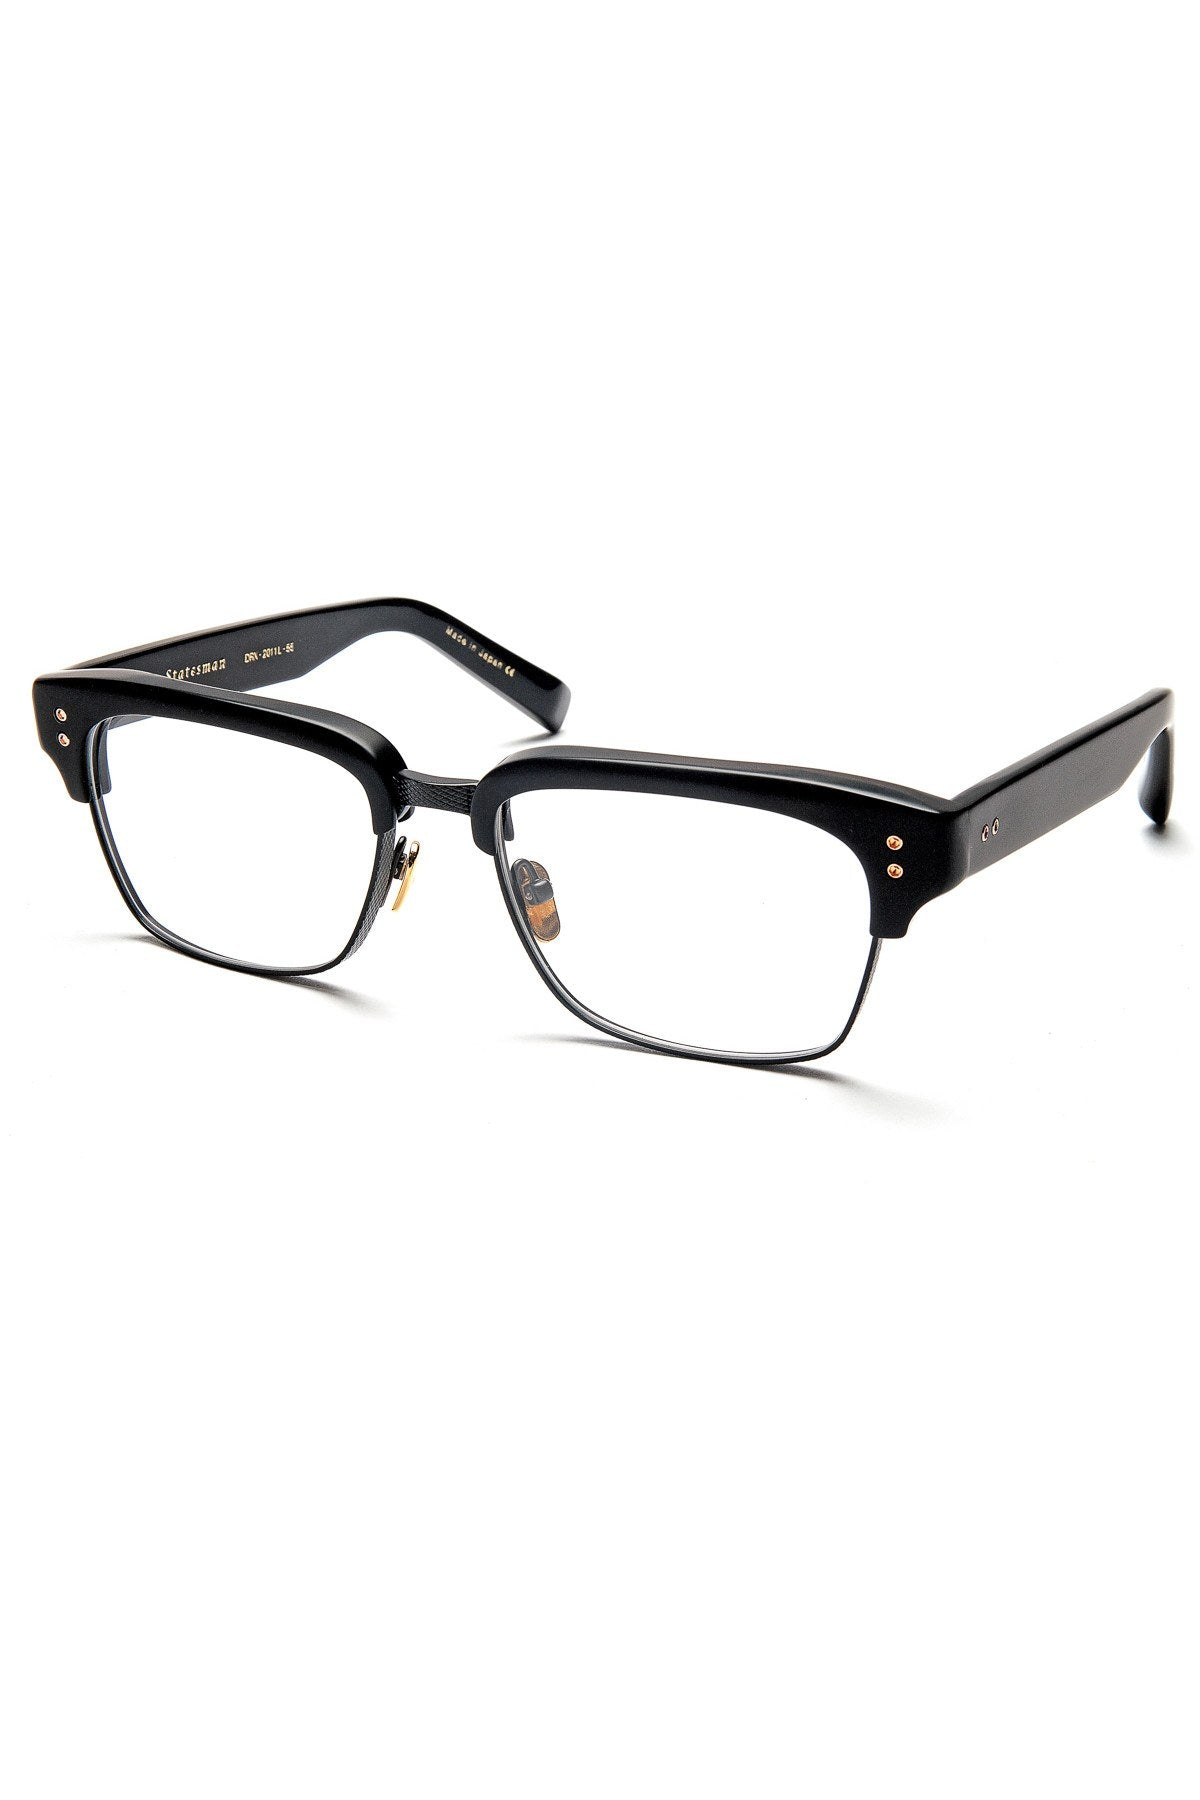 Optical Frame - Dita Statesman DRX-2011L